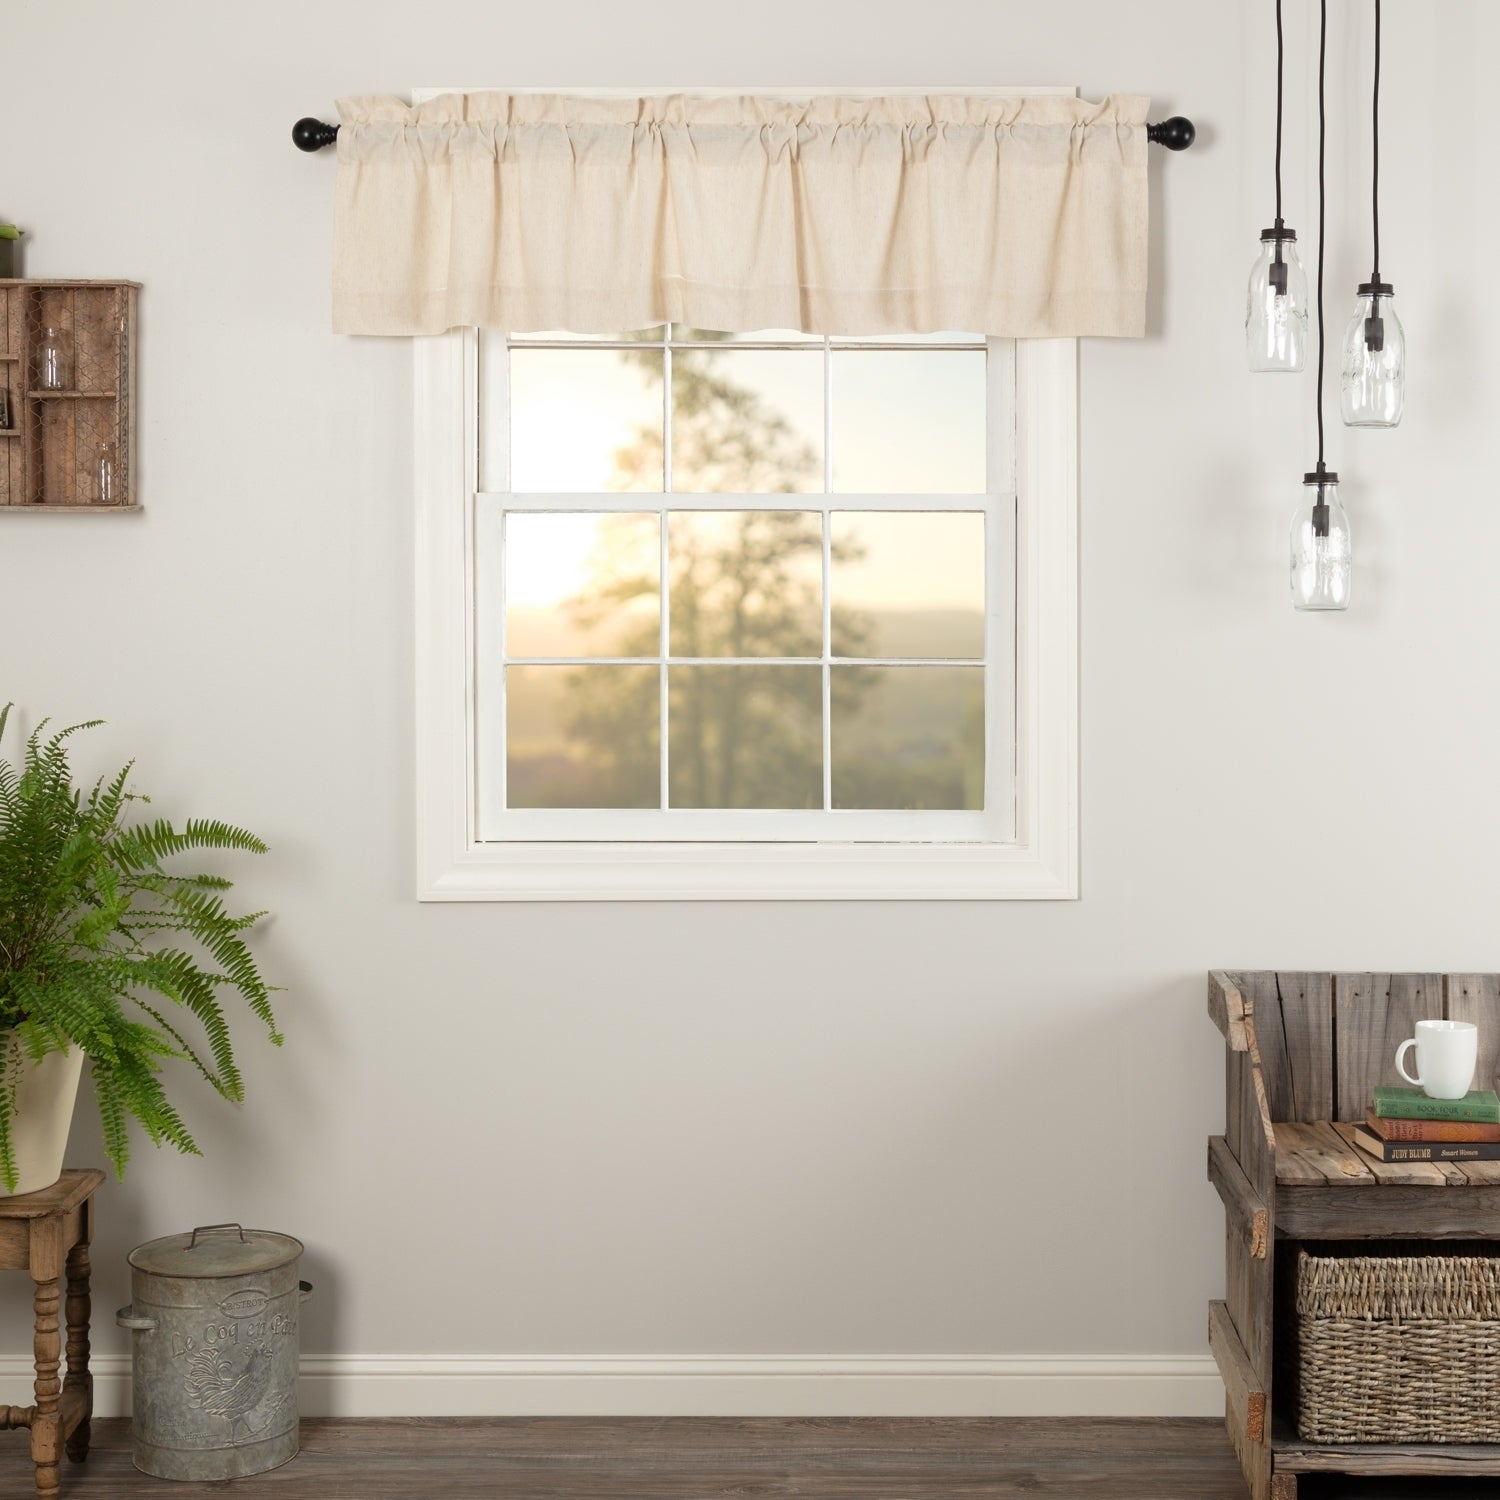 Merveilleux Farmhouse Kitchen Curtains VHC Simple Life Flax Valance Rod Pocket Cotton  Linen Blend Solid Color Flax